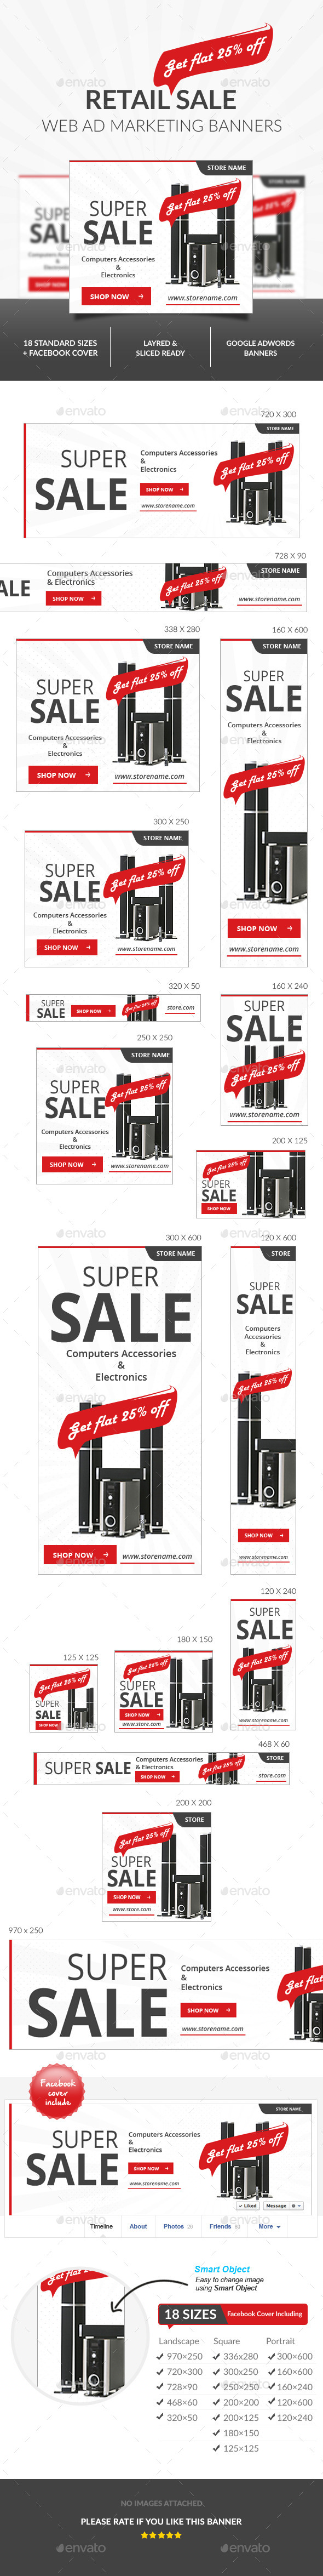 GraphicRiver Retail Sale Ad Banners 10159717